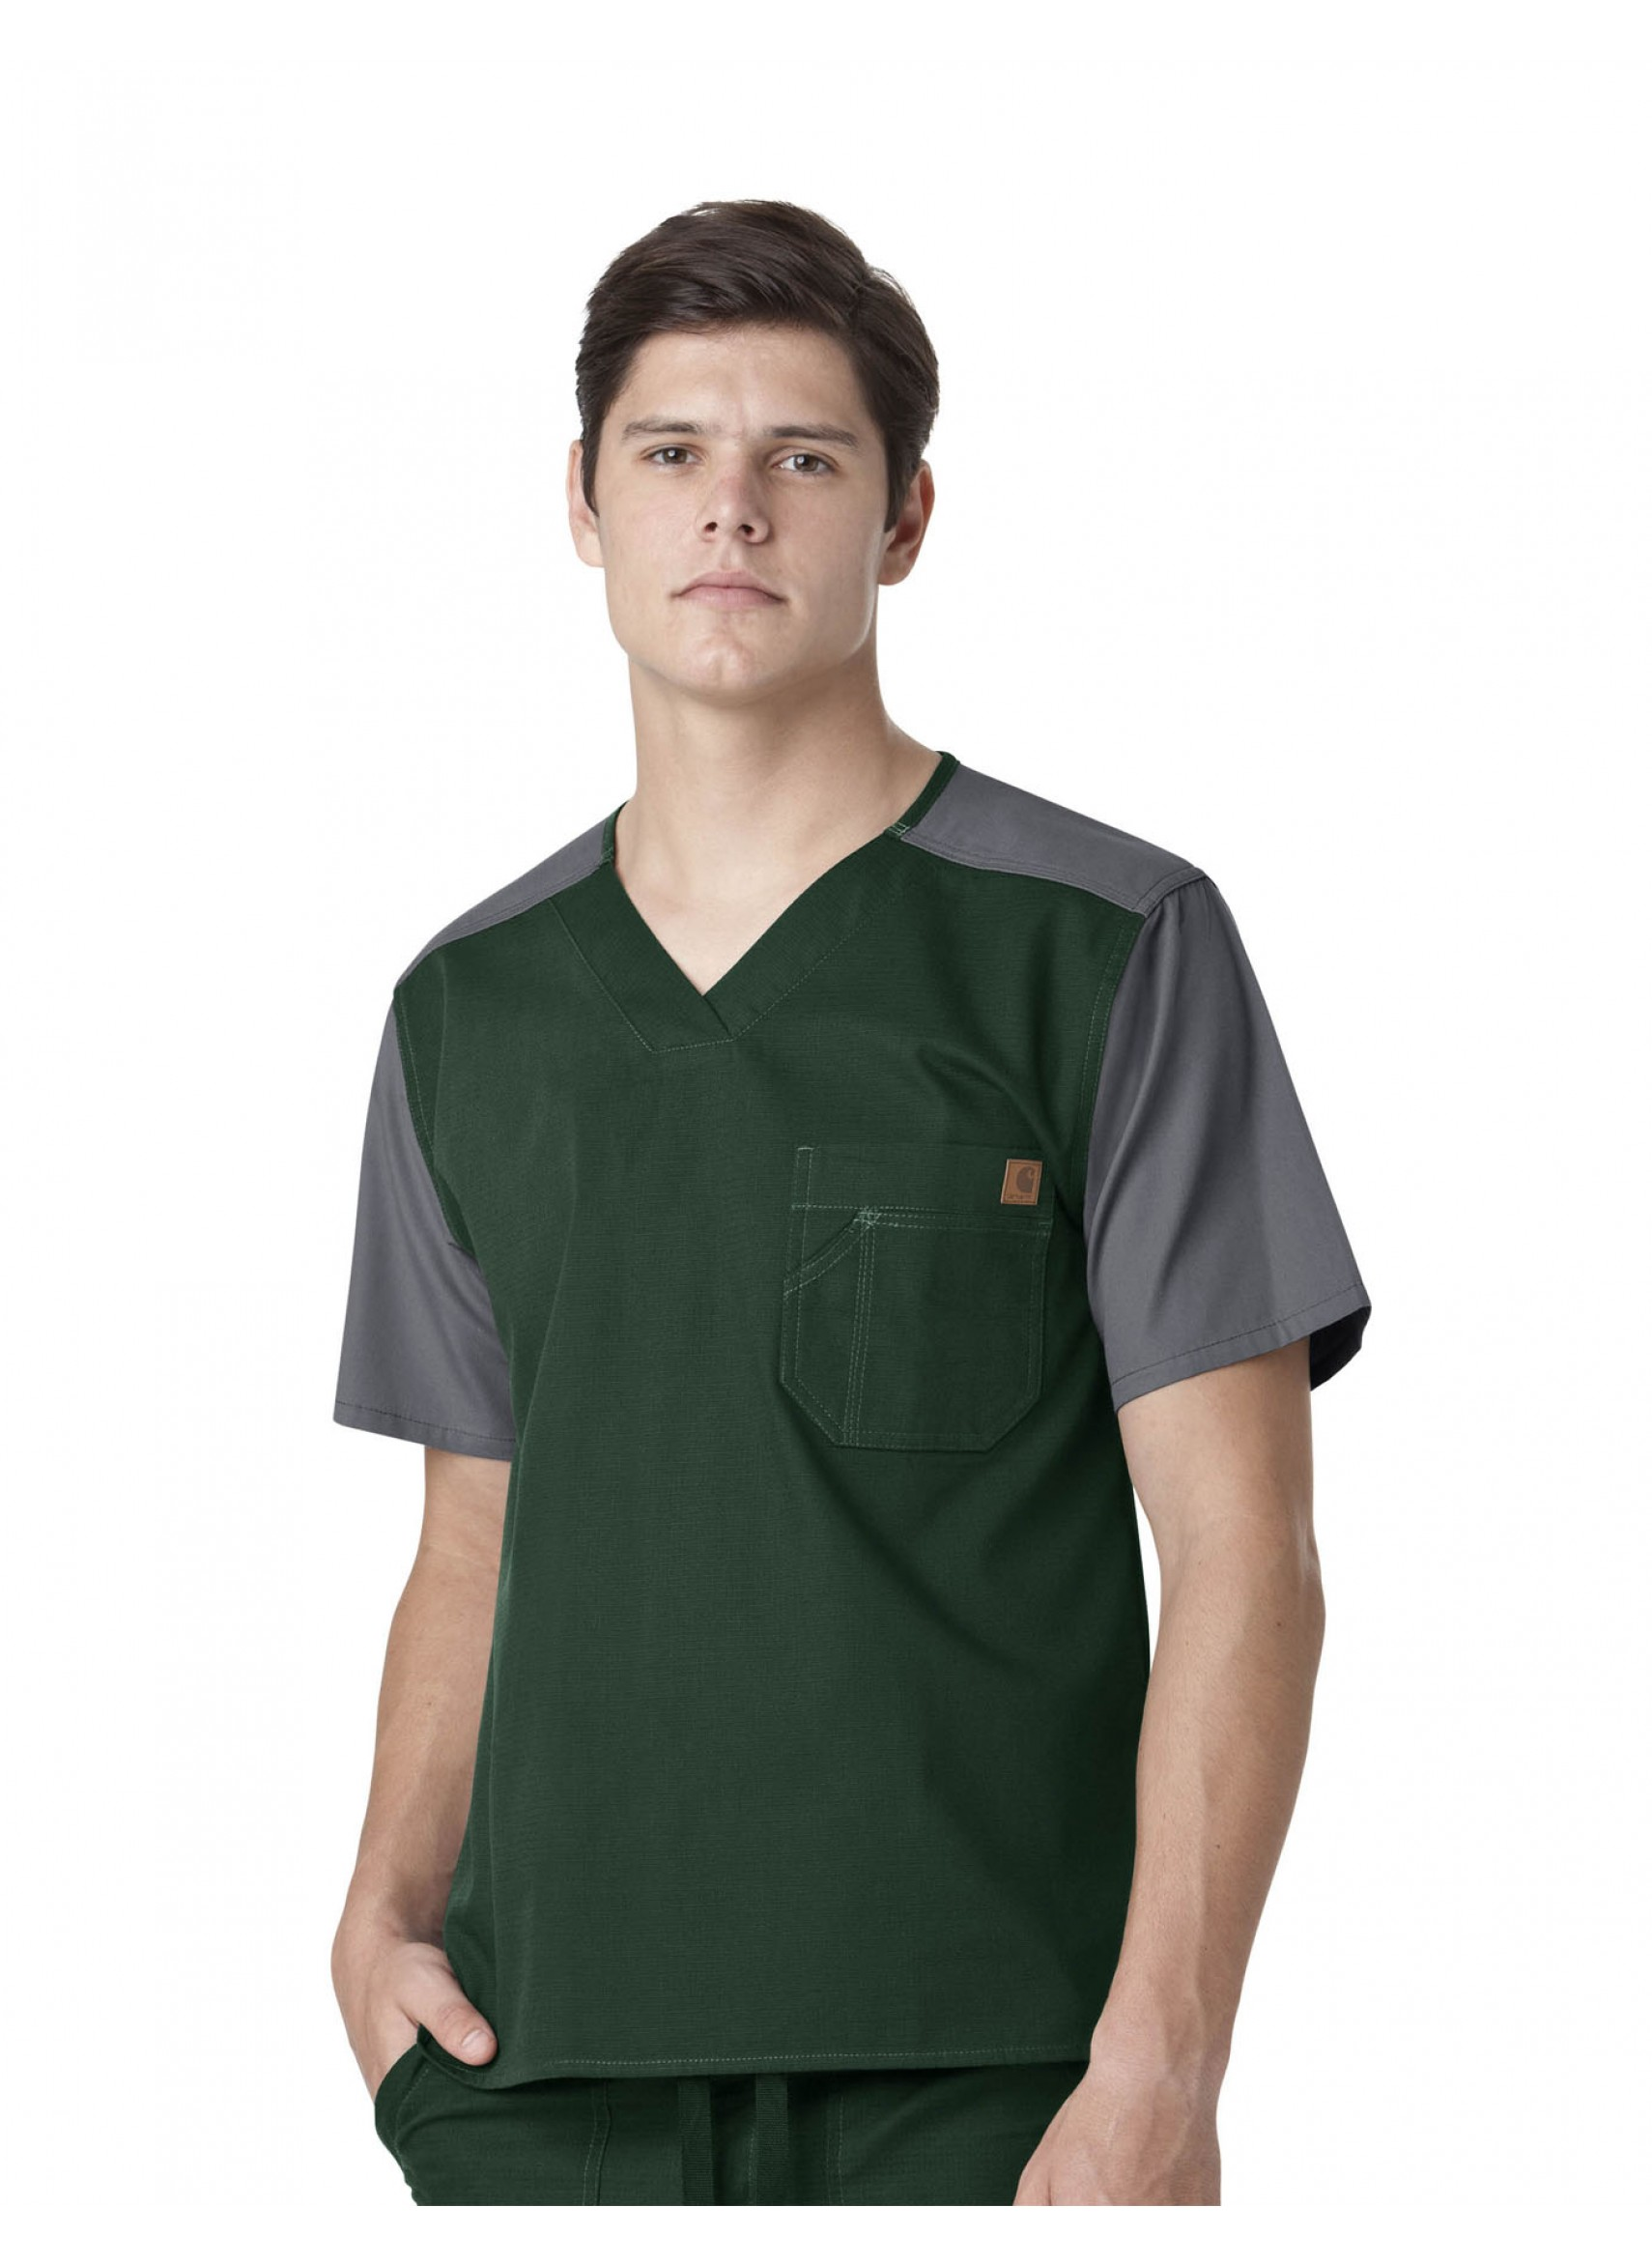 bff3aa867c1 Happy Father's Day! 15% off sitewide with code DAD at checkout! Carhartt  C14108 Men's Color Block Utility Top